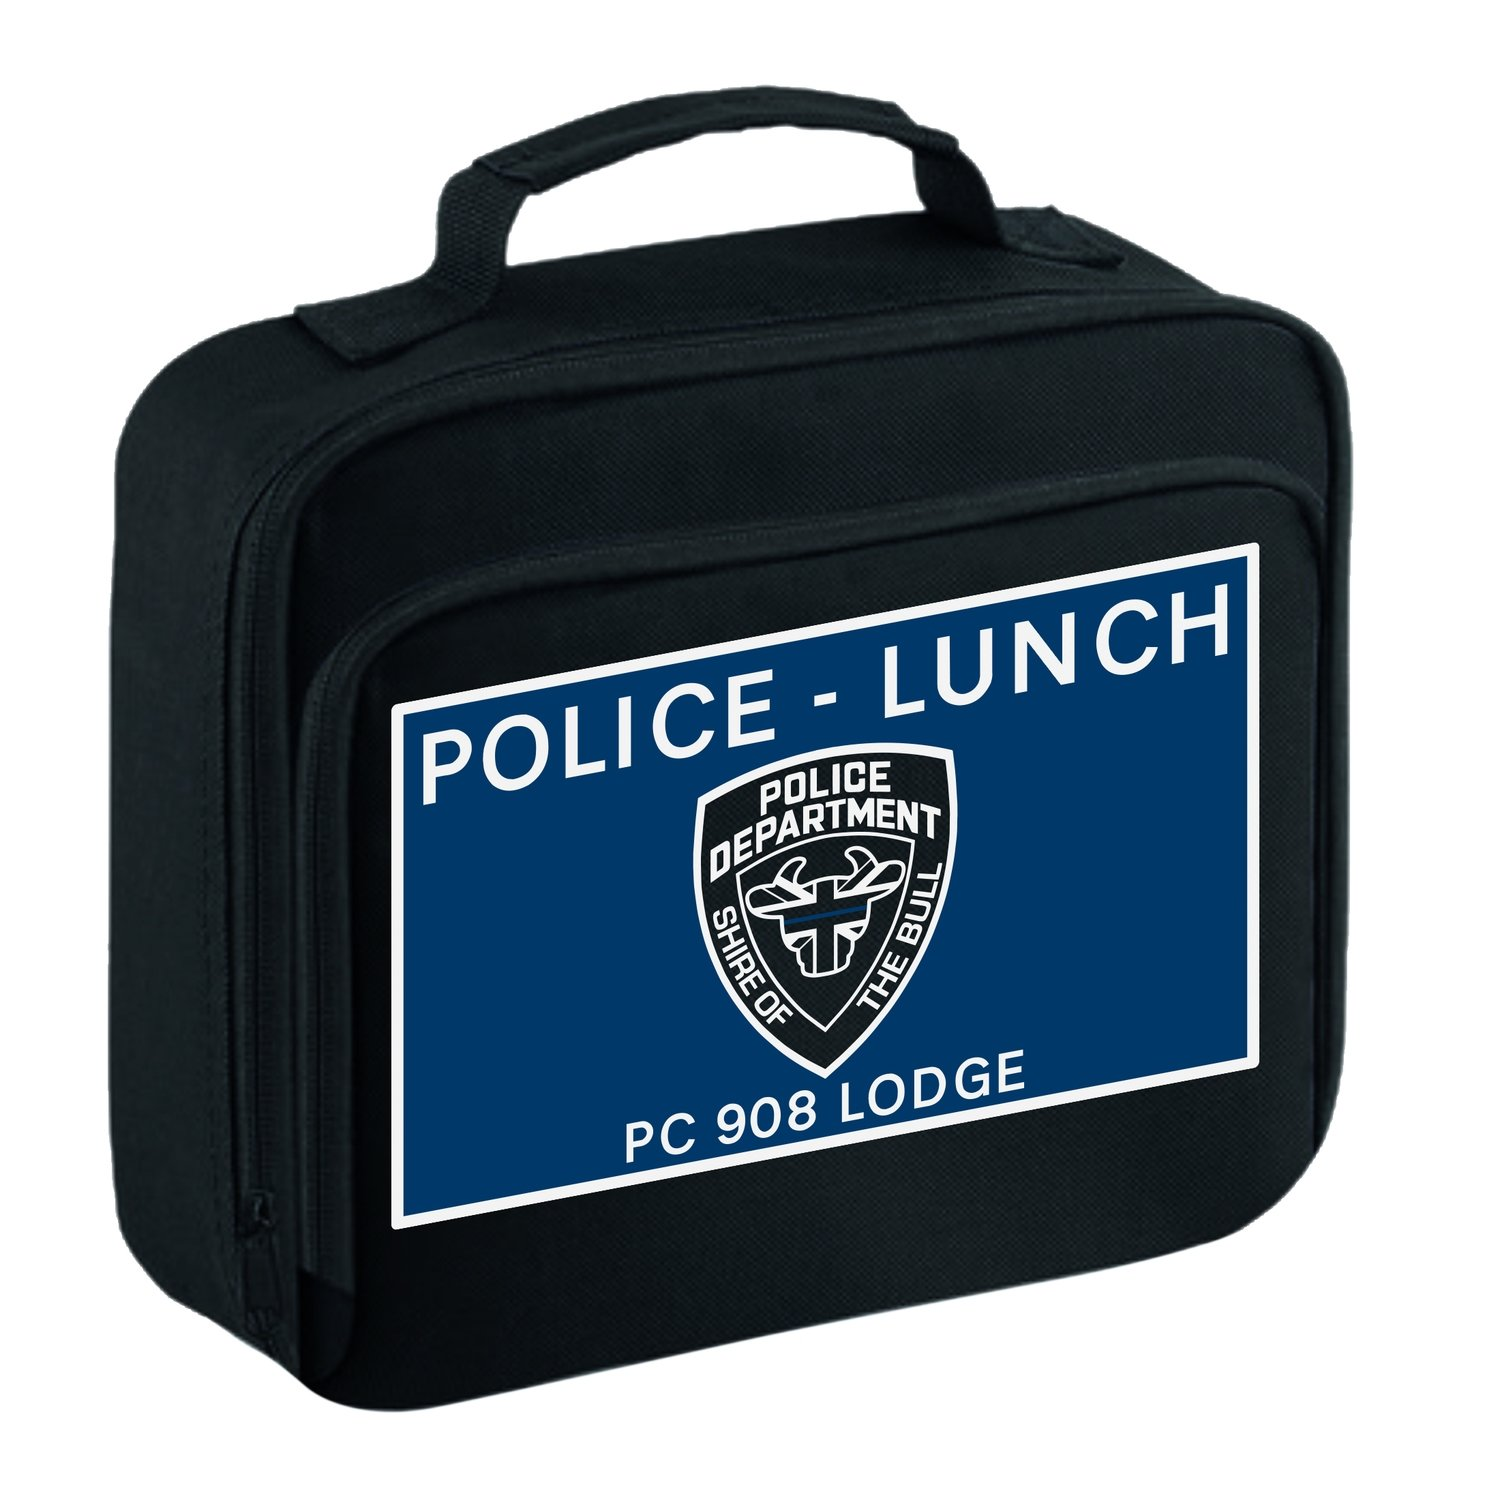 Personalised 'POLICE - LUNCH' Lunch Bag